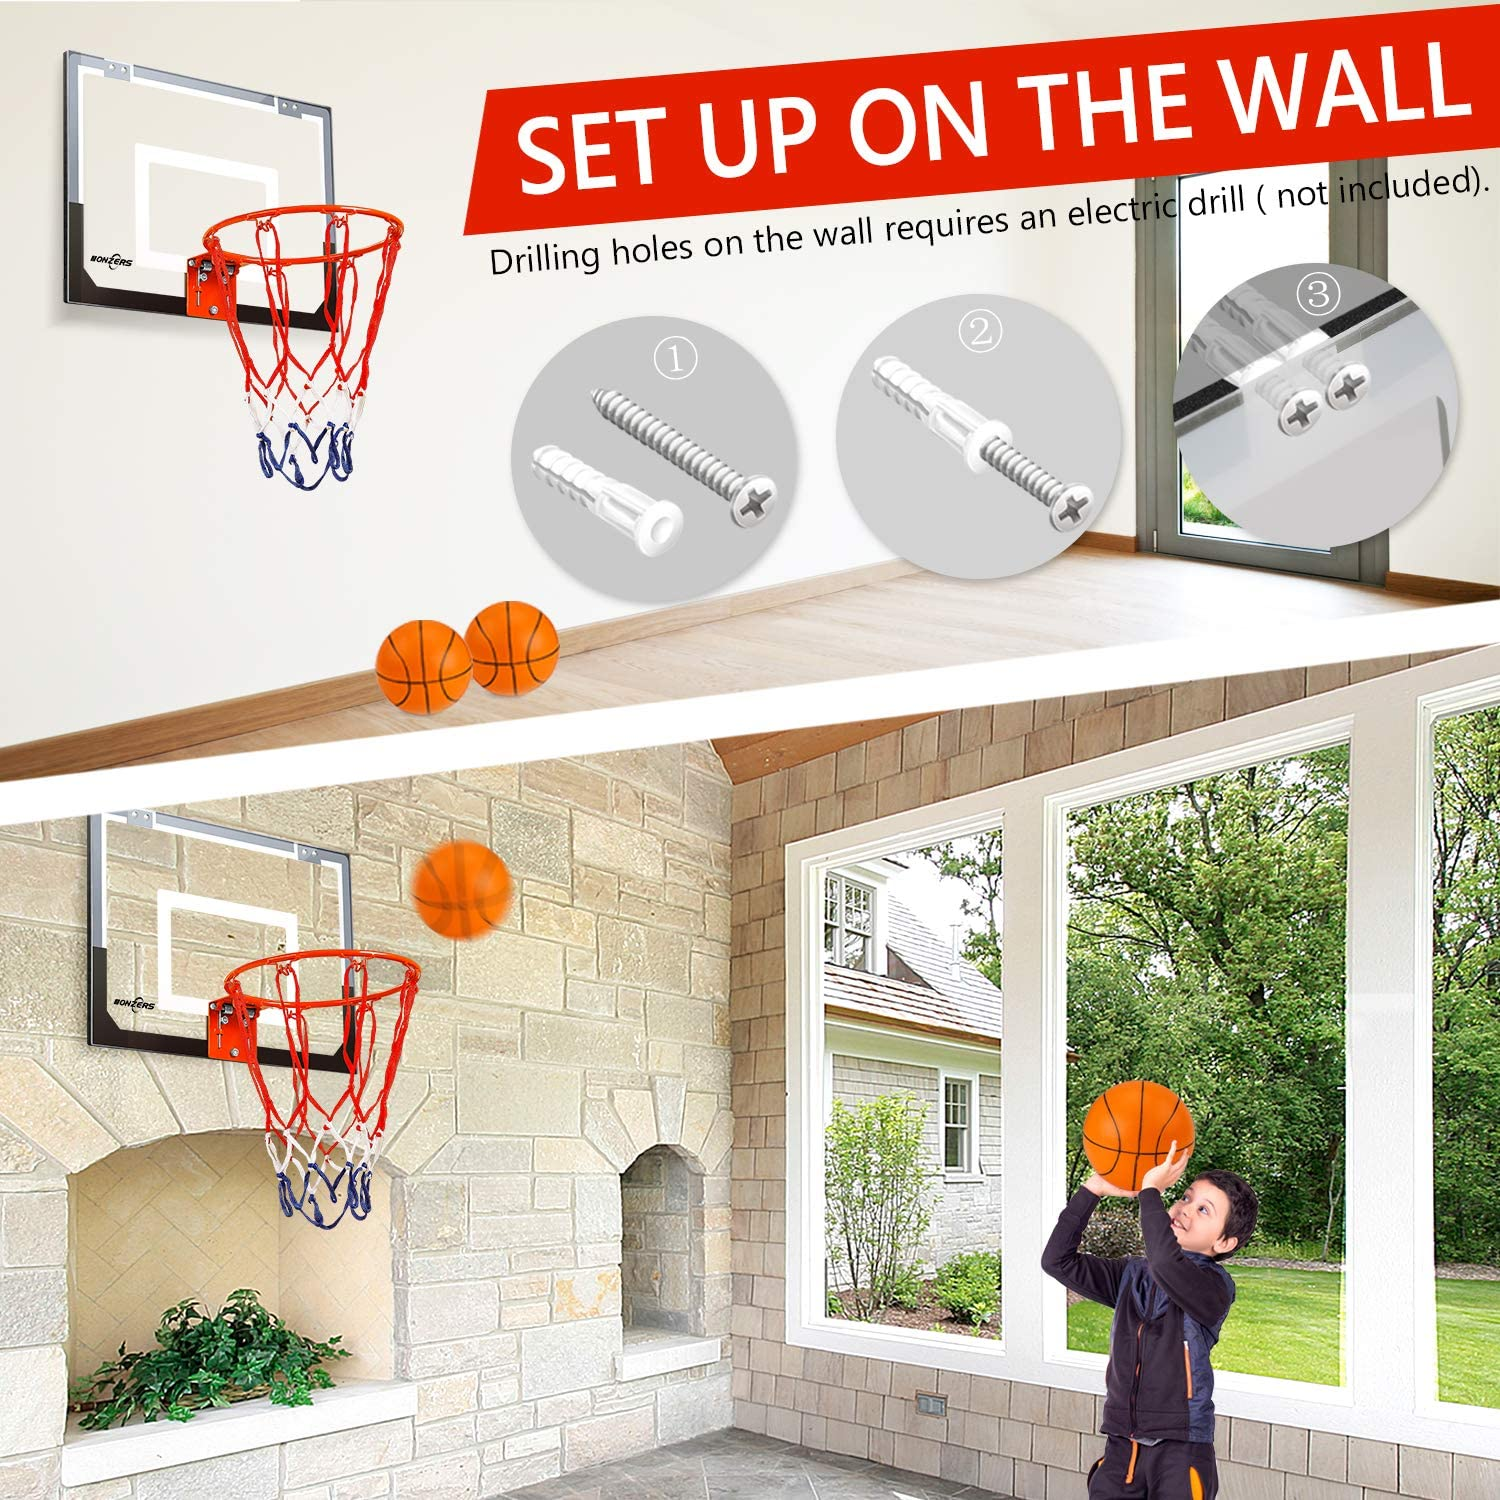 NONZERS Mini Basketball Hoop for Door & Wall, Indoor Mini Basketball Hoop Set for Home and Office Games, Includes 2 Mini Basketballs and Hand Pump, Mobile Mini-Hoop Gift for Kids Boys Girls: Toys & Games